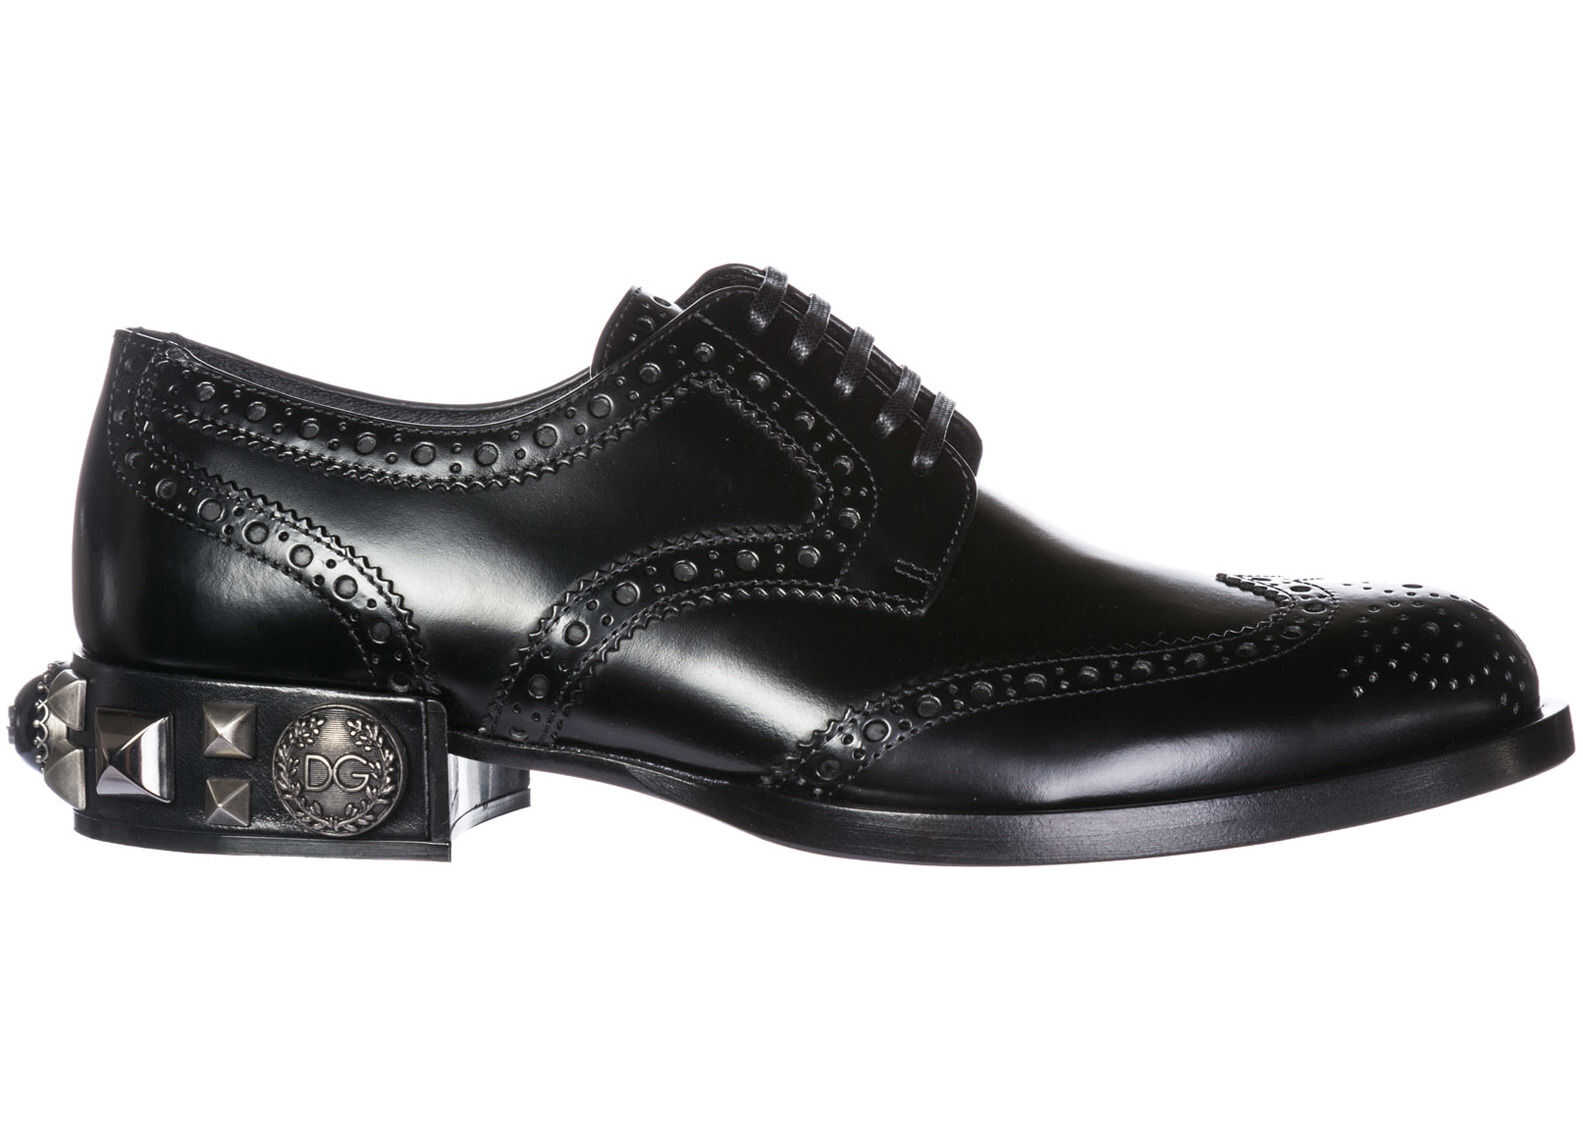 Dolce & Gabbana Shoes Derby Black